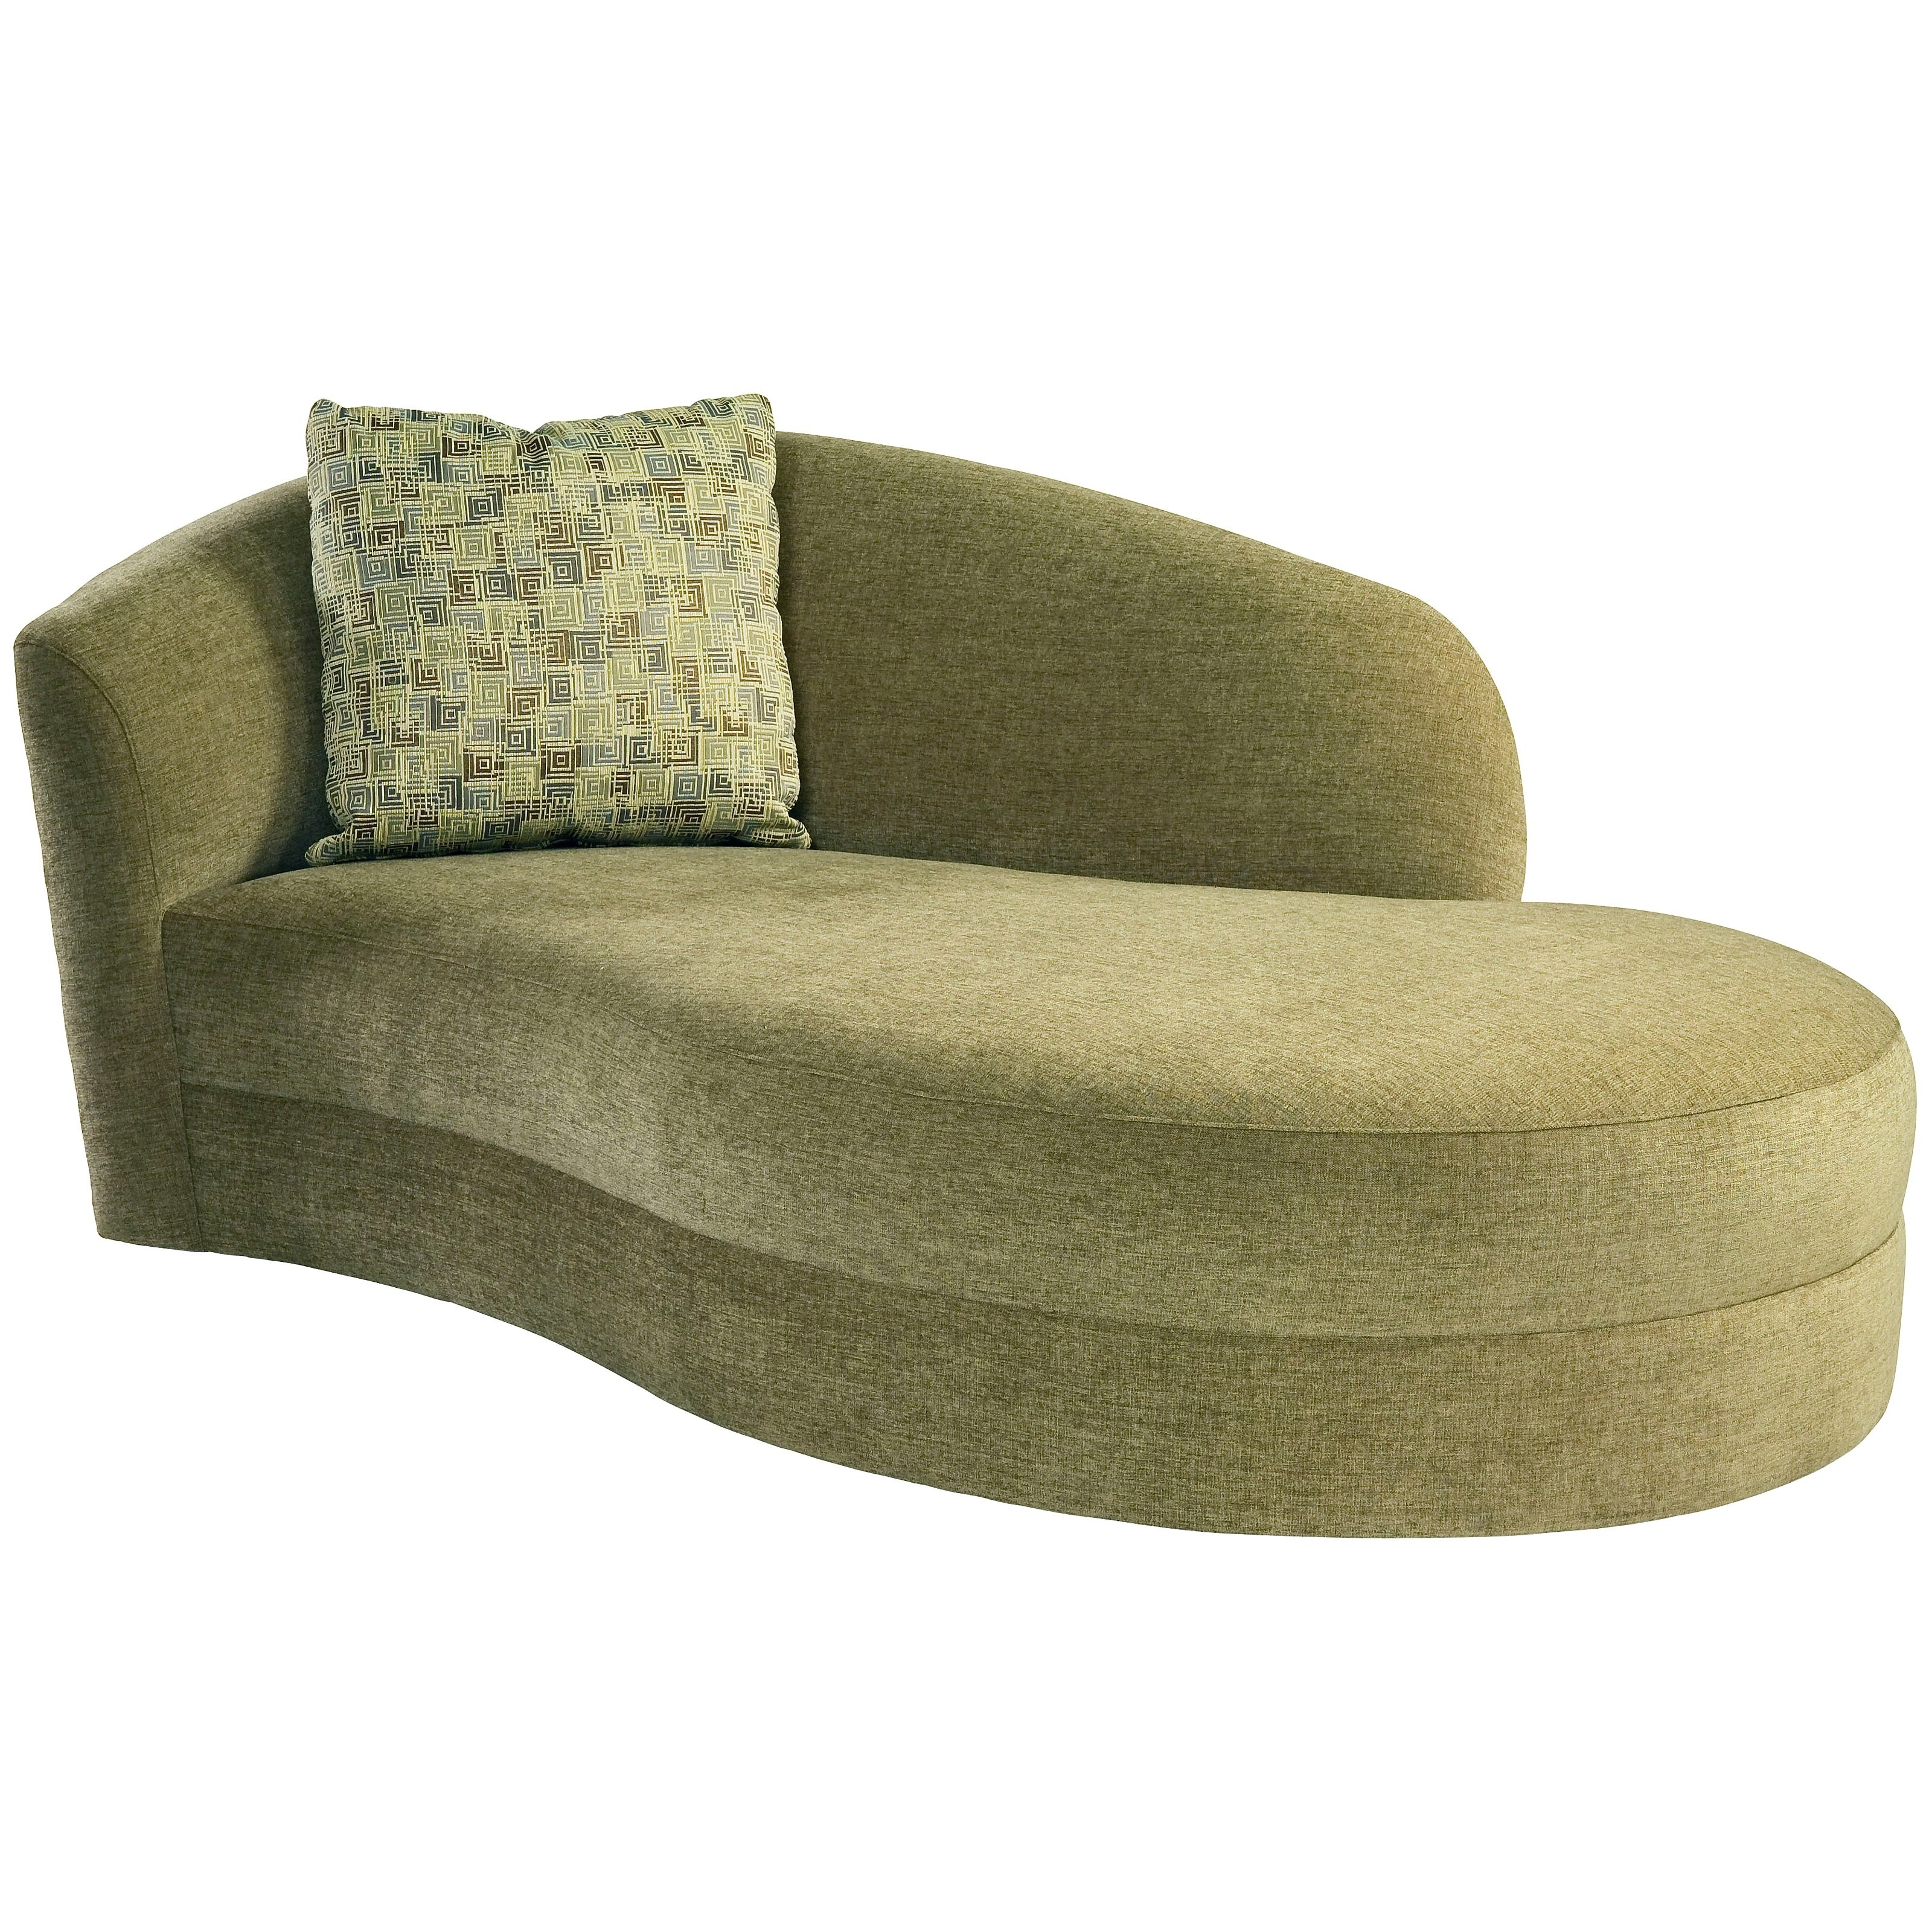 Mini Loveseat Awesome Chaise Lounges Mini Chaise Lounge Buy Long Within Recent Mini Chaise Lounges (View 12 of 15)